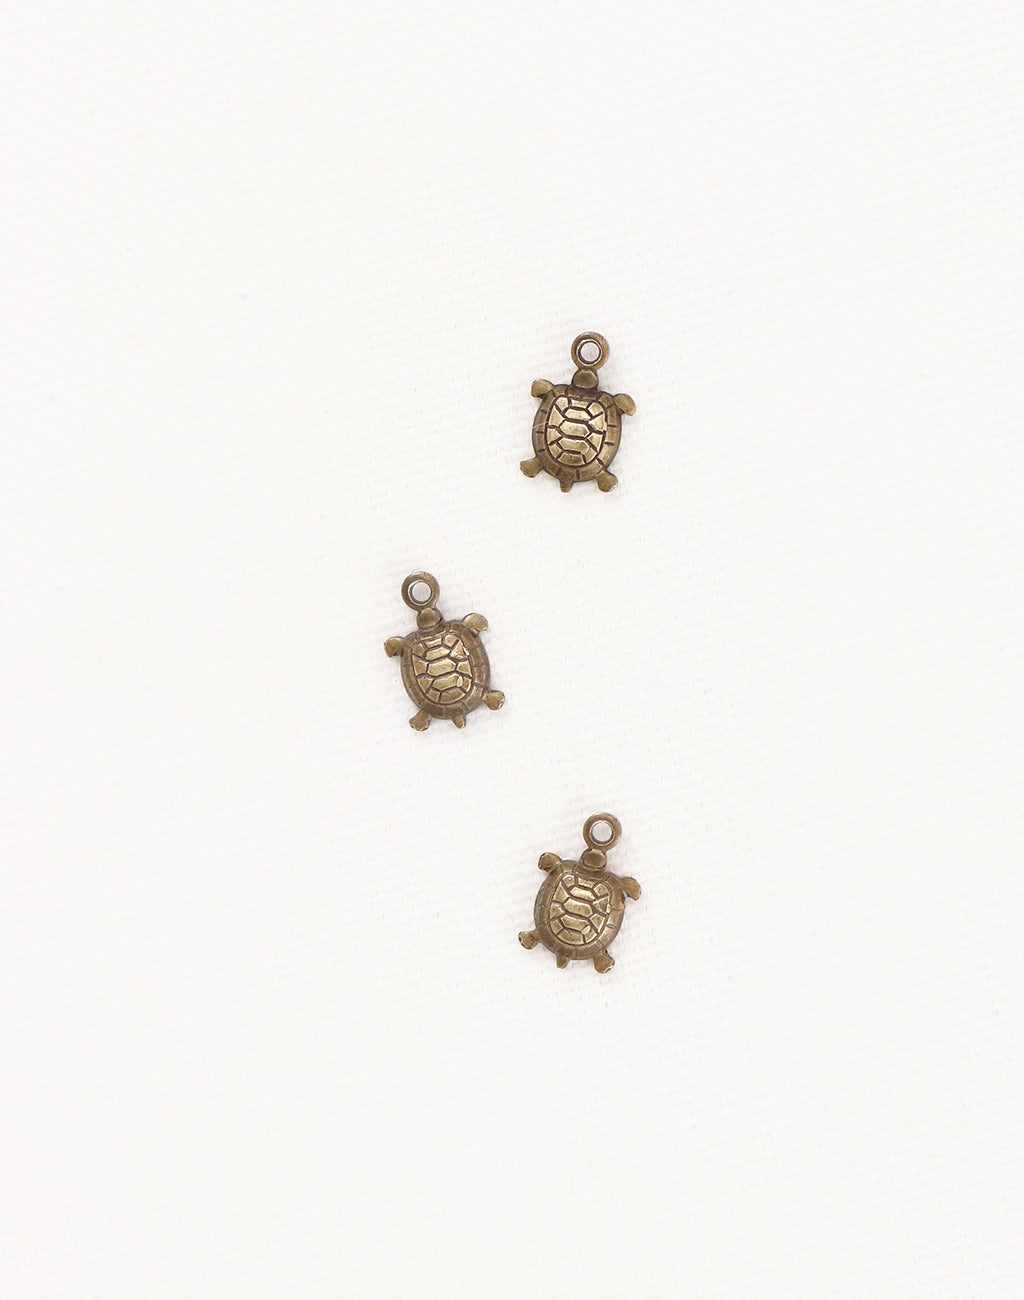 Teensie Turtle, 10x7mm, (3pcs)